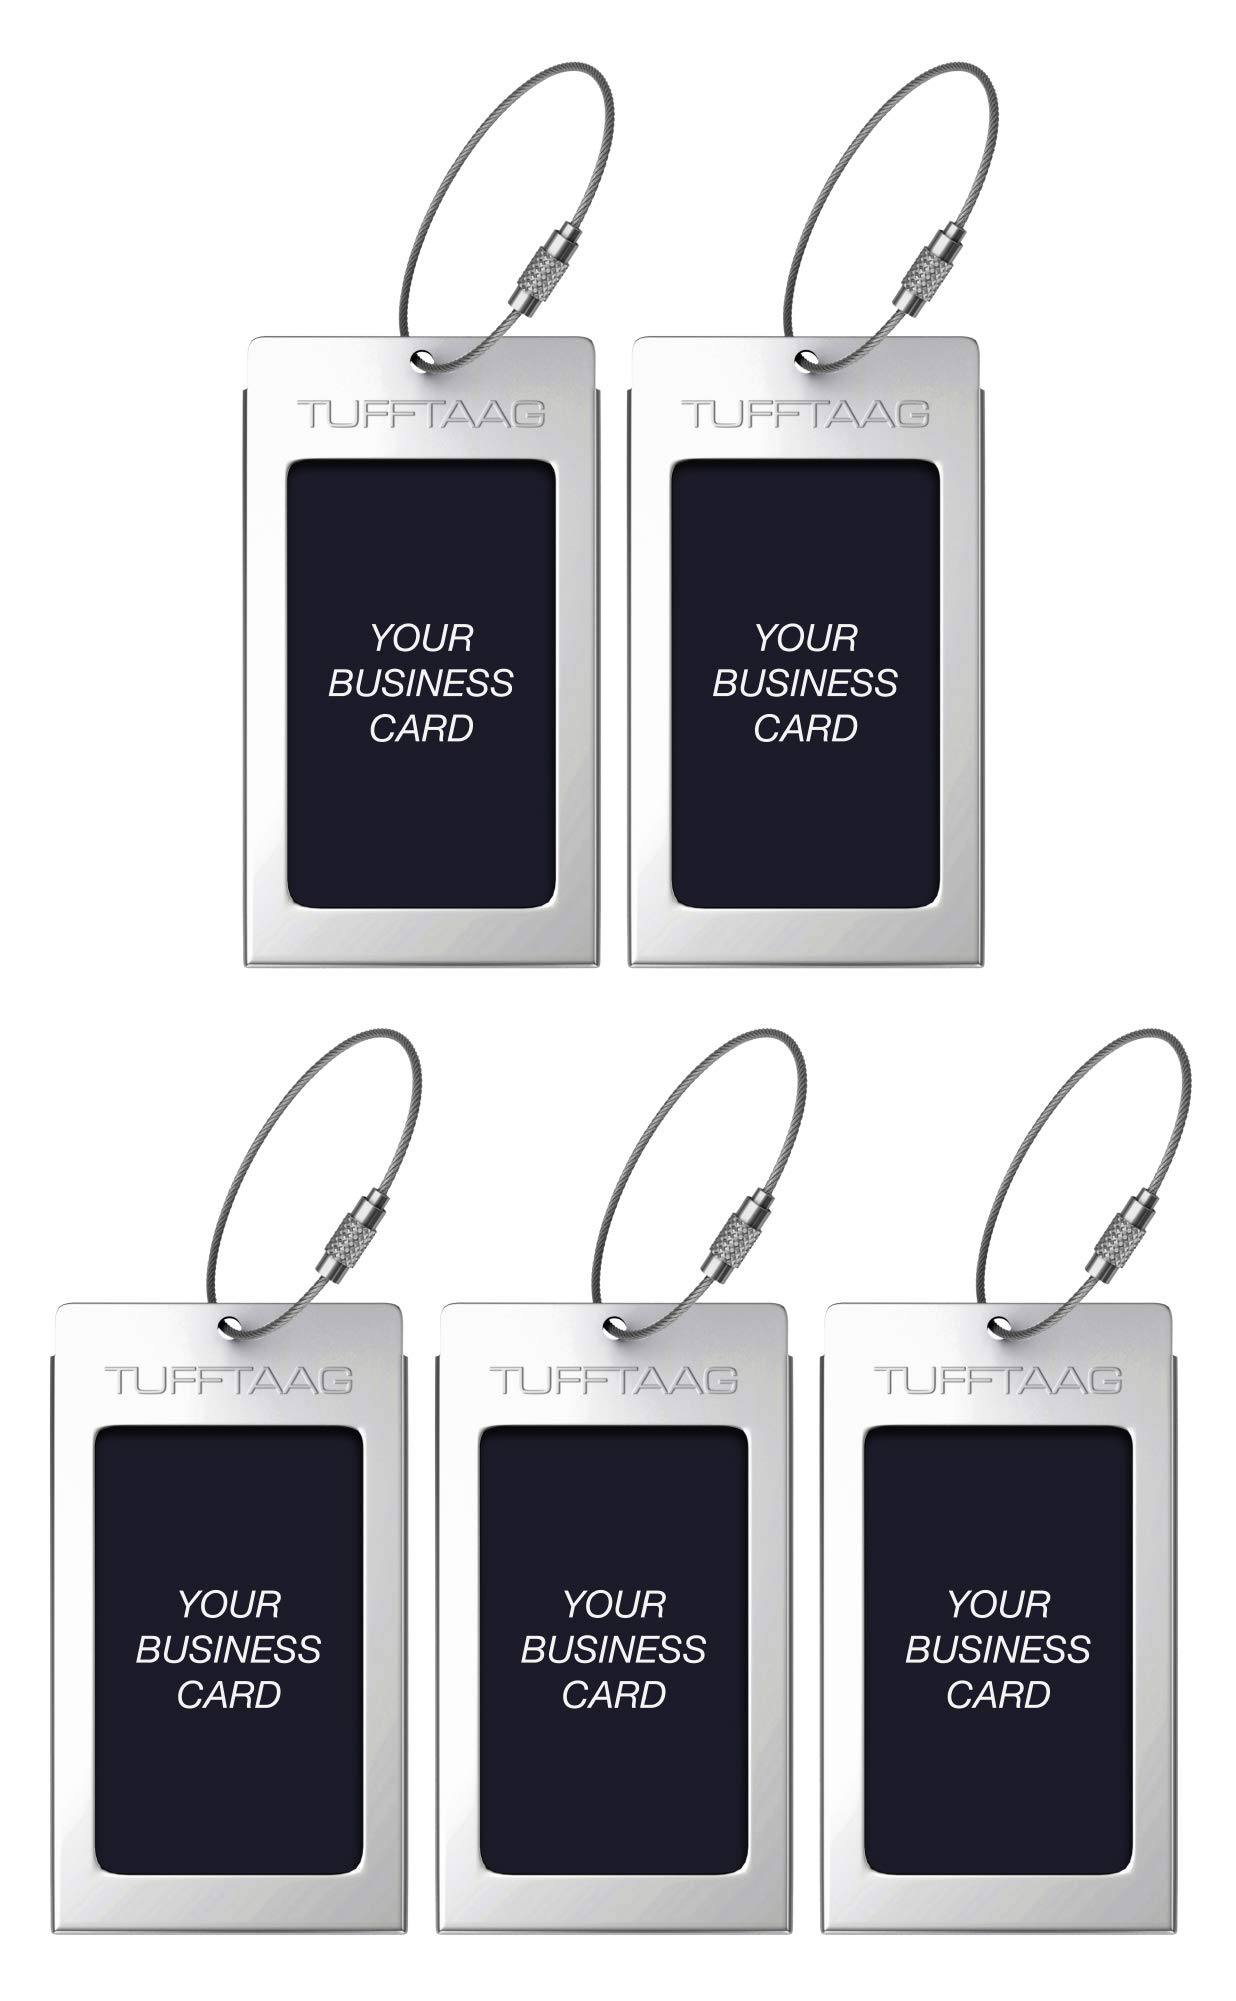 Luggage Tags TUFFTAAG for Business Cards, Metal Suitcase Labels, 5 Pack Bundle (5 Silver)